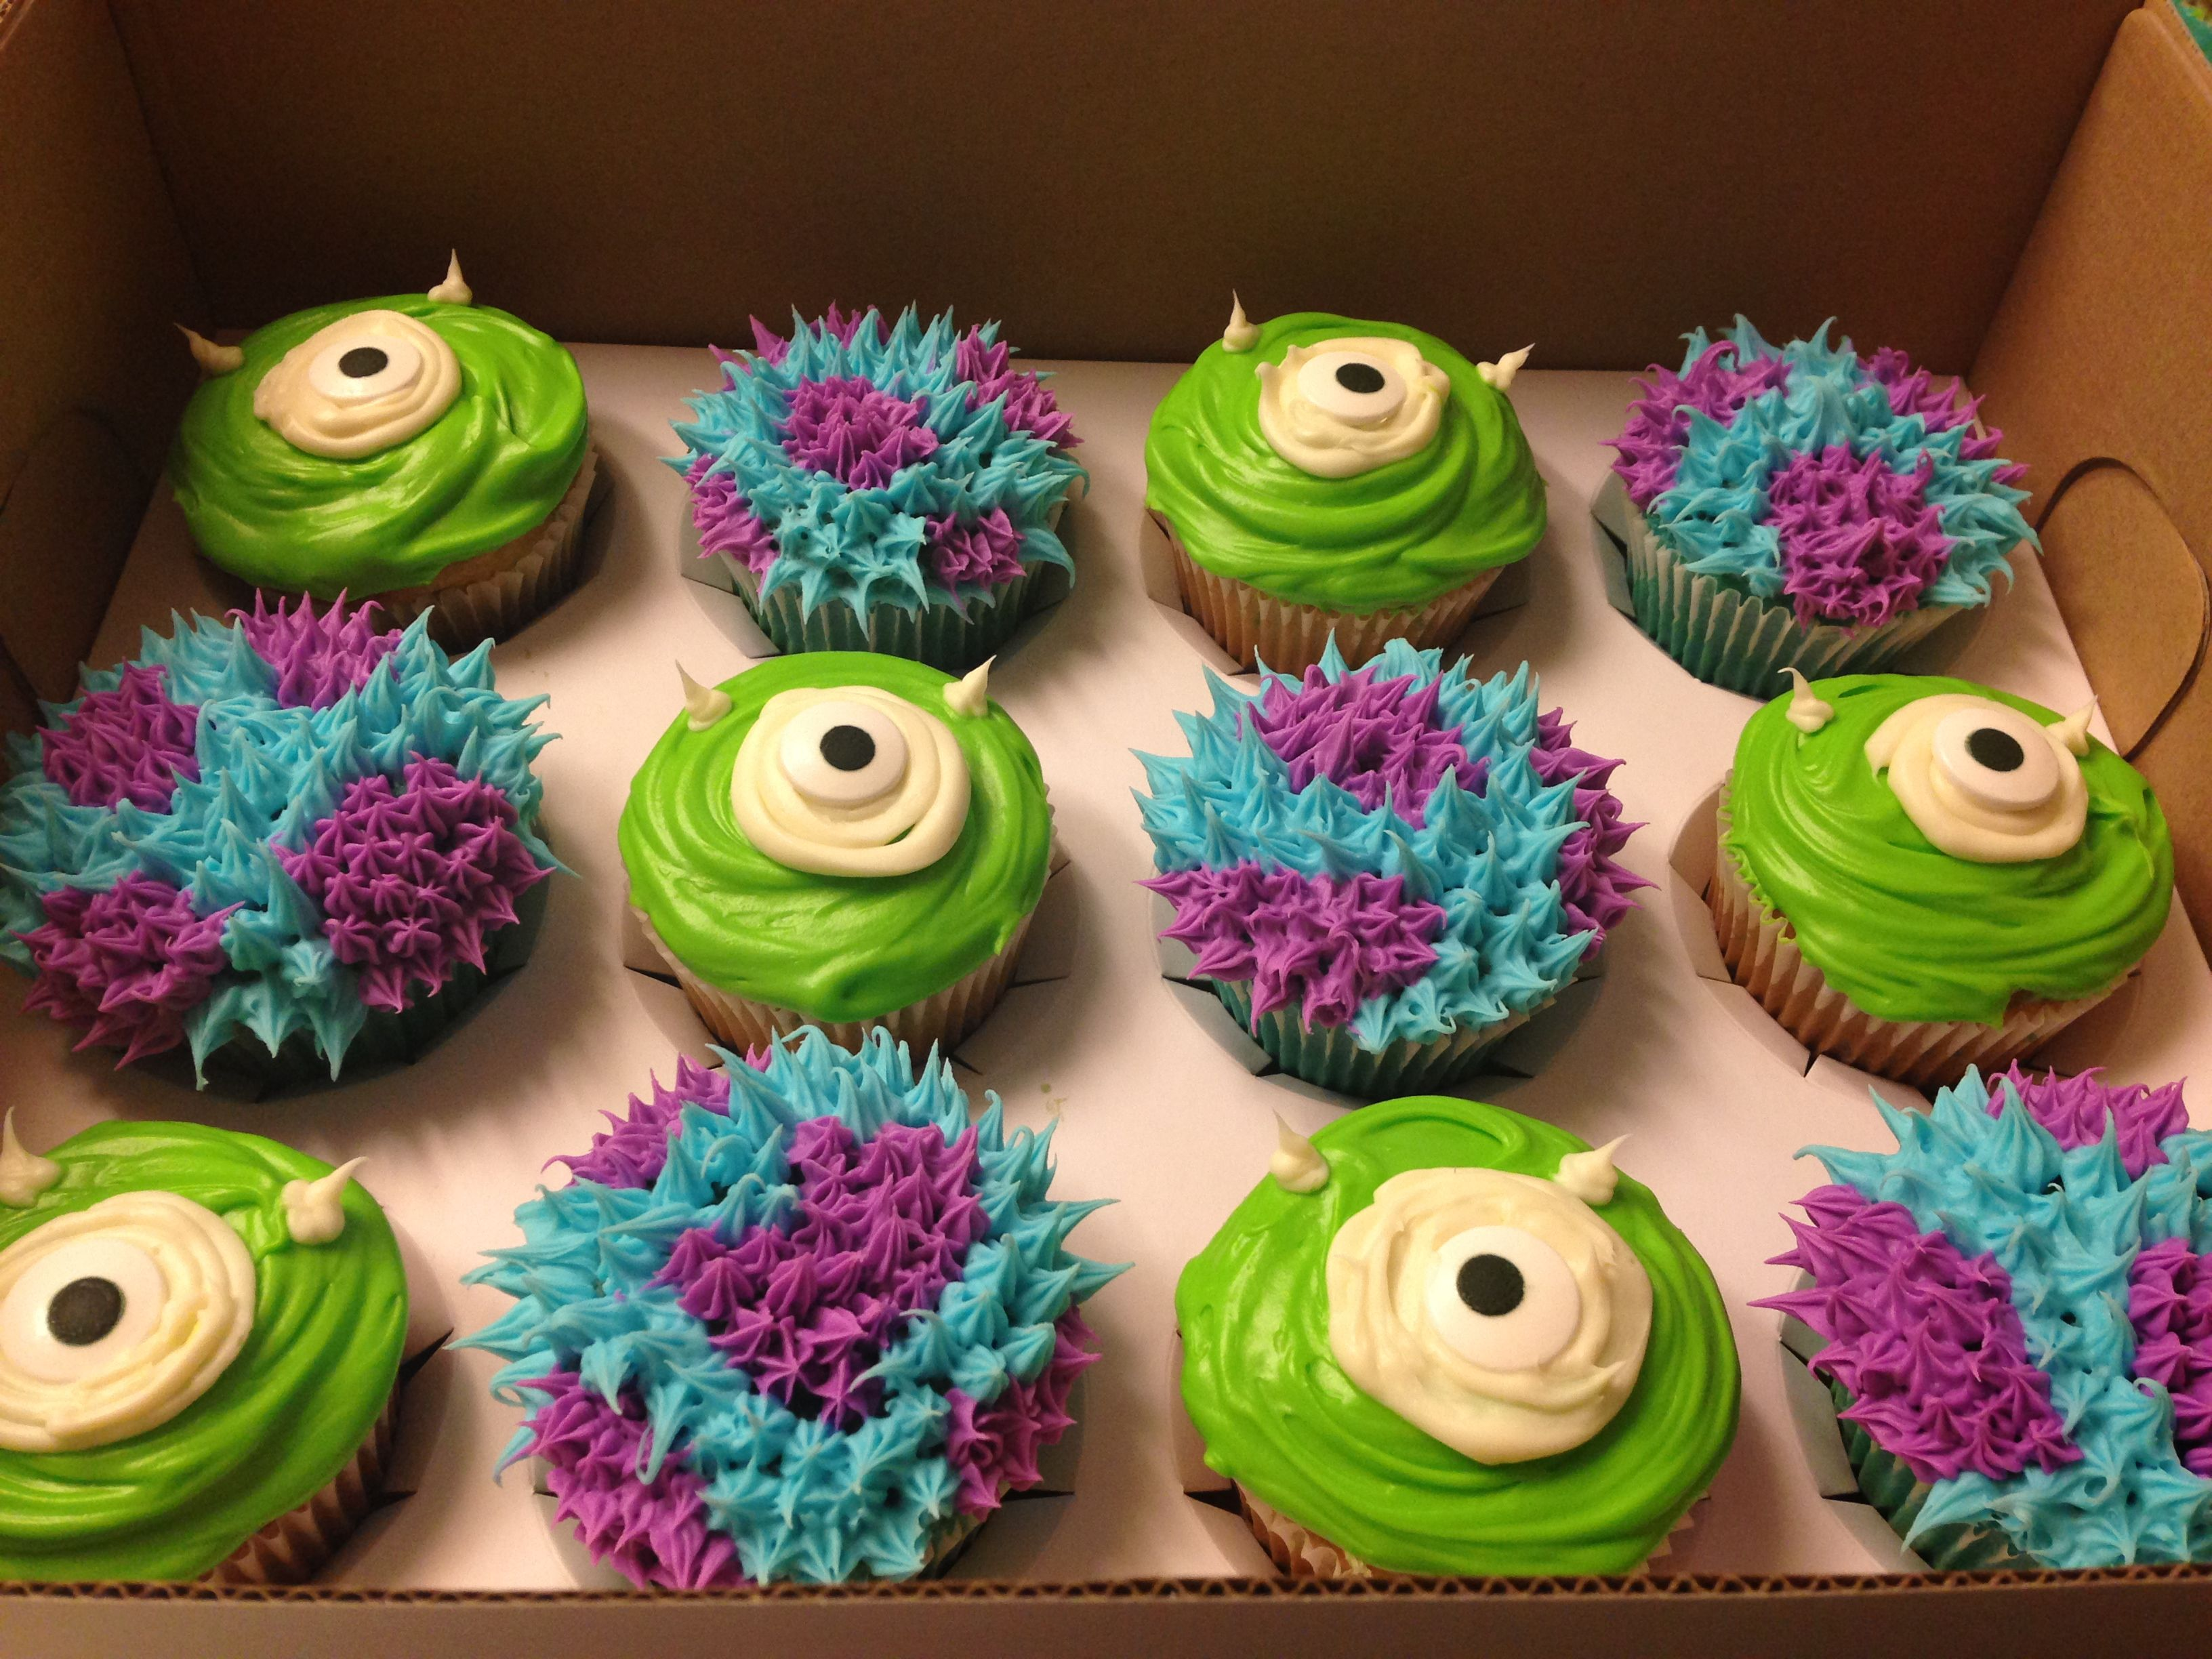 My attempt at these Monsters Inc. Cupcakes. I just made them the 'ol Pillsbury and Sara Lee way. Sully ones are blue velvet cake with blue raspberry and purple vanilla frosting. Mike ones are white cake with green bits in it and key lime frosting. monsters inc monsters incorporated birthday Birthday cupcakes cup cakes